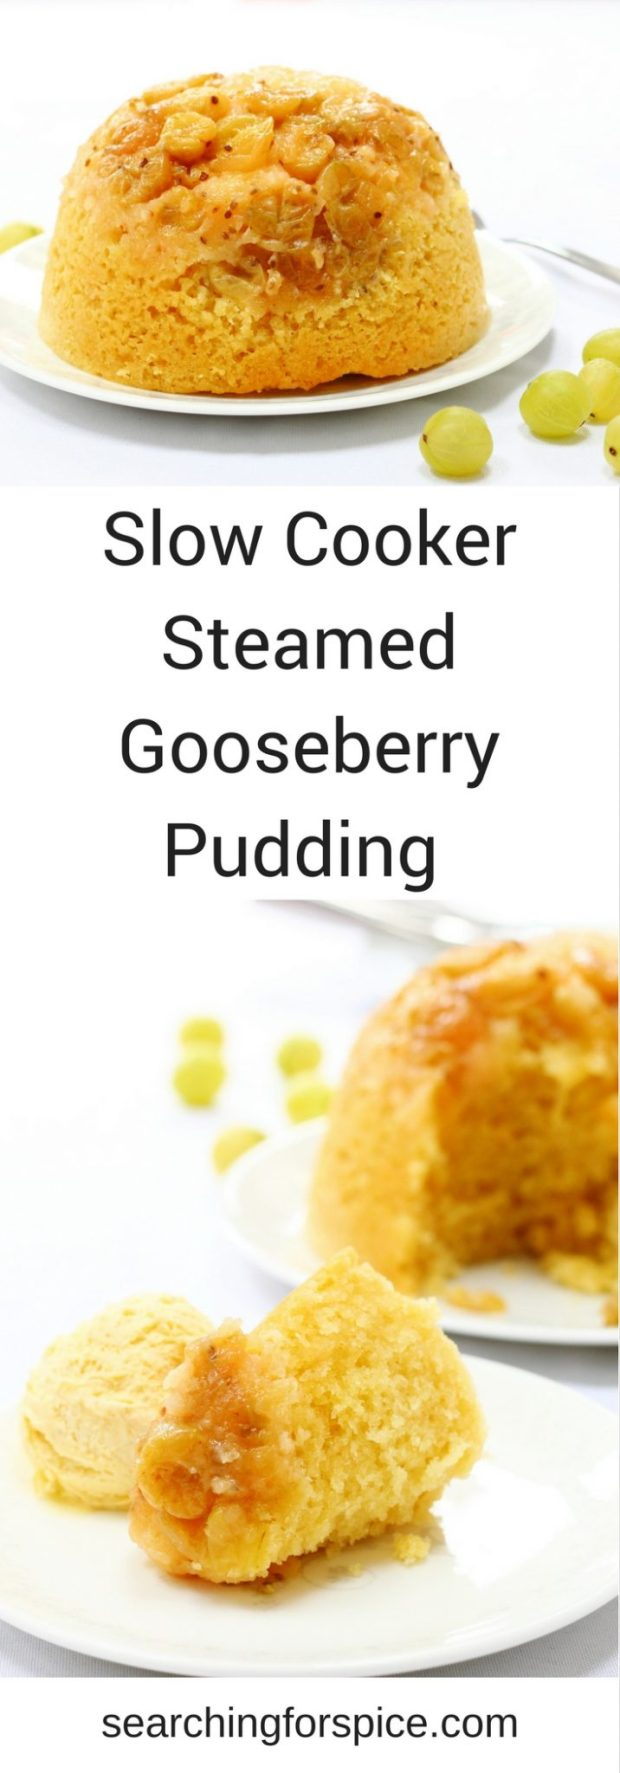 Steamed Gooseberry Pudding In The Slow Cooker Searching